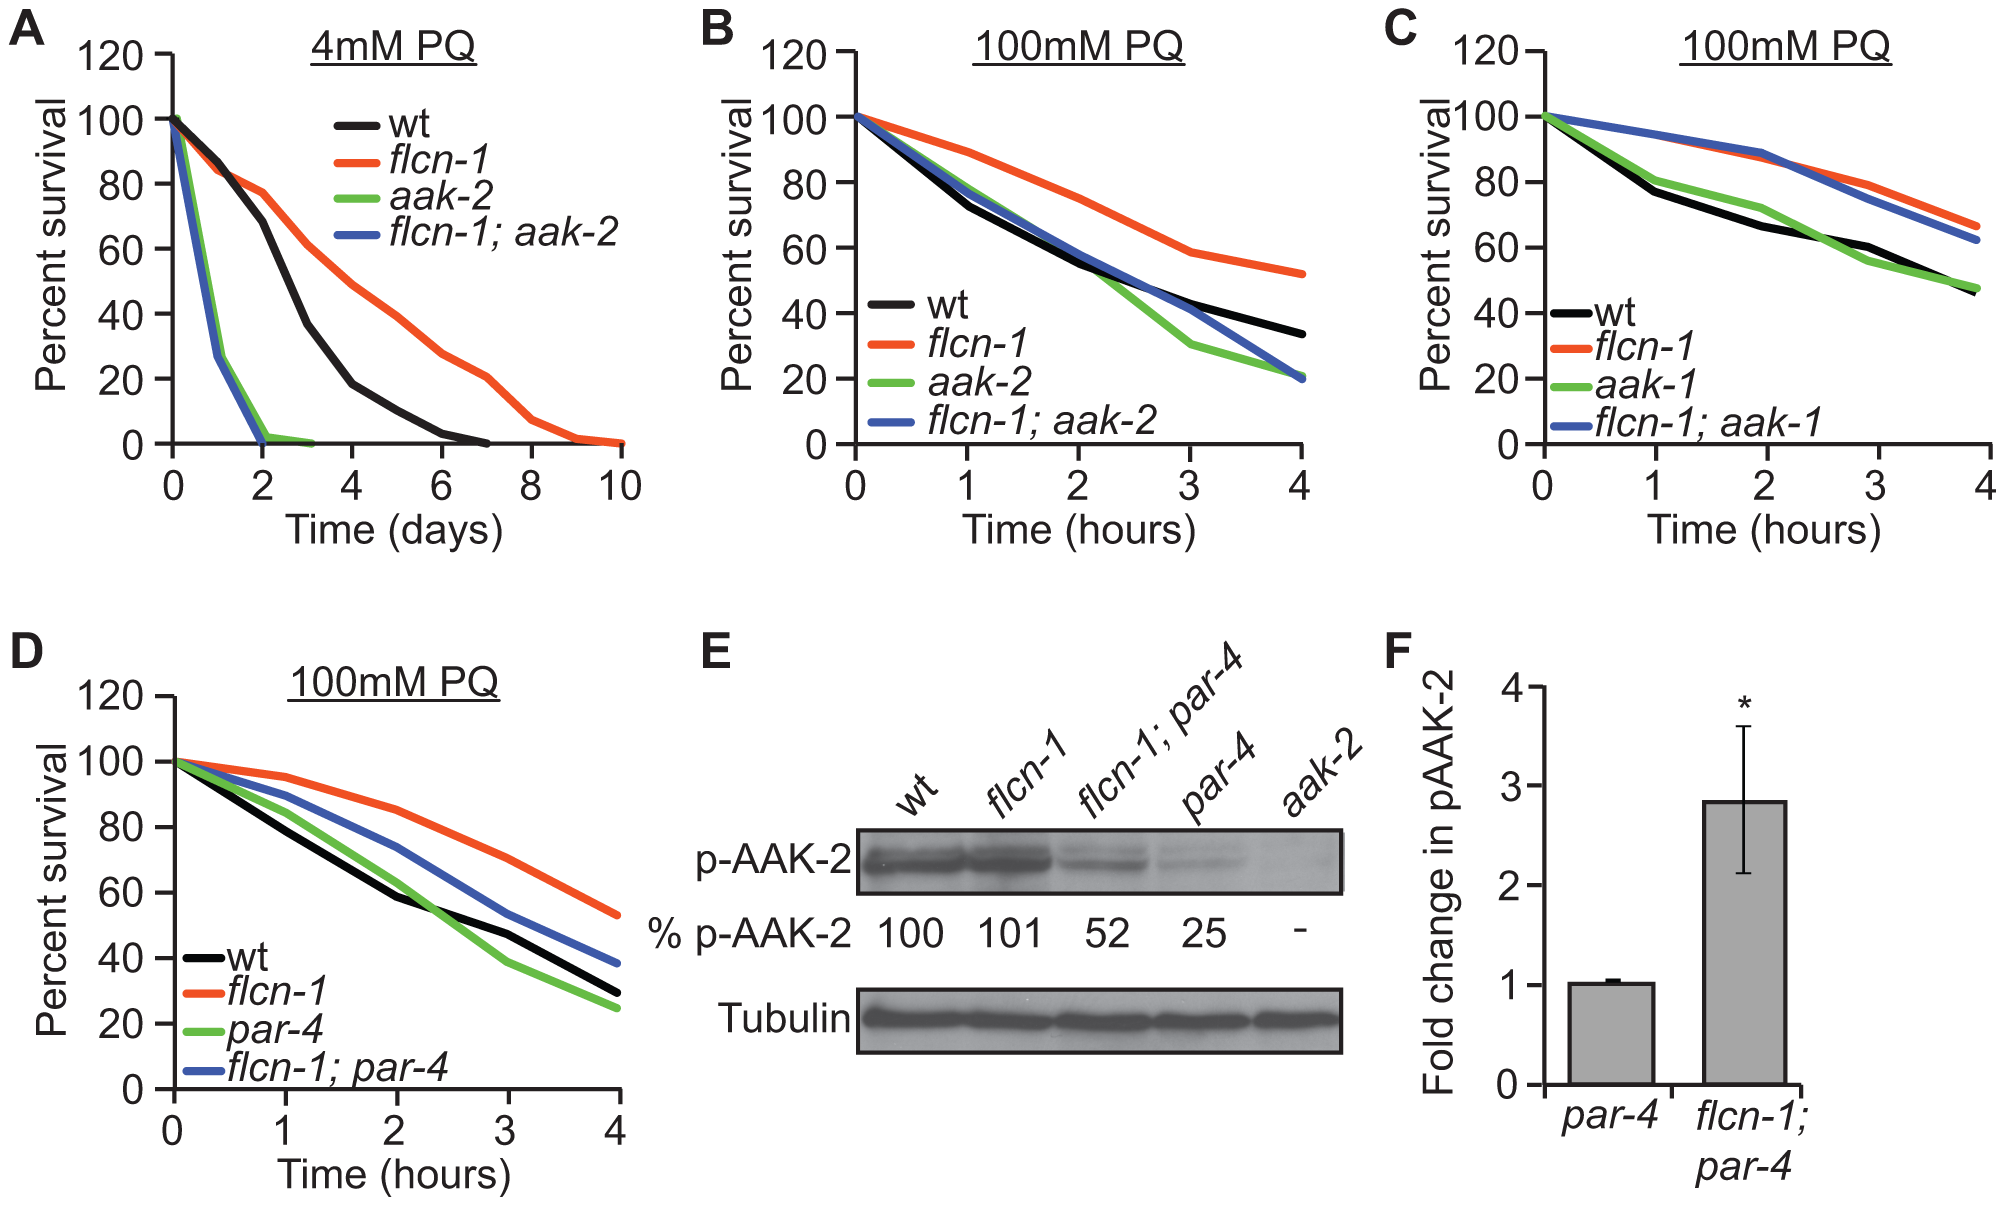 Loss of <i>flcn-1</i> confers an <i>aak-2</i>-dependent resistance to oxidative stress.